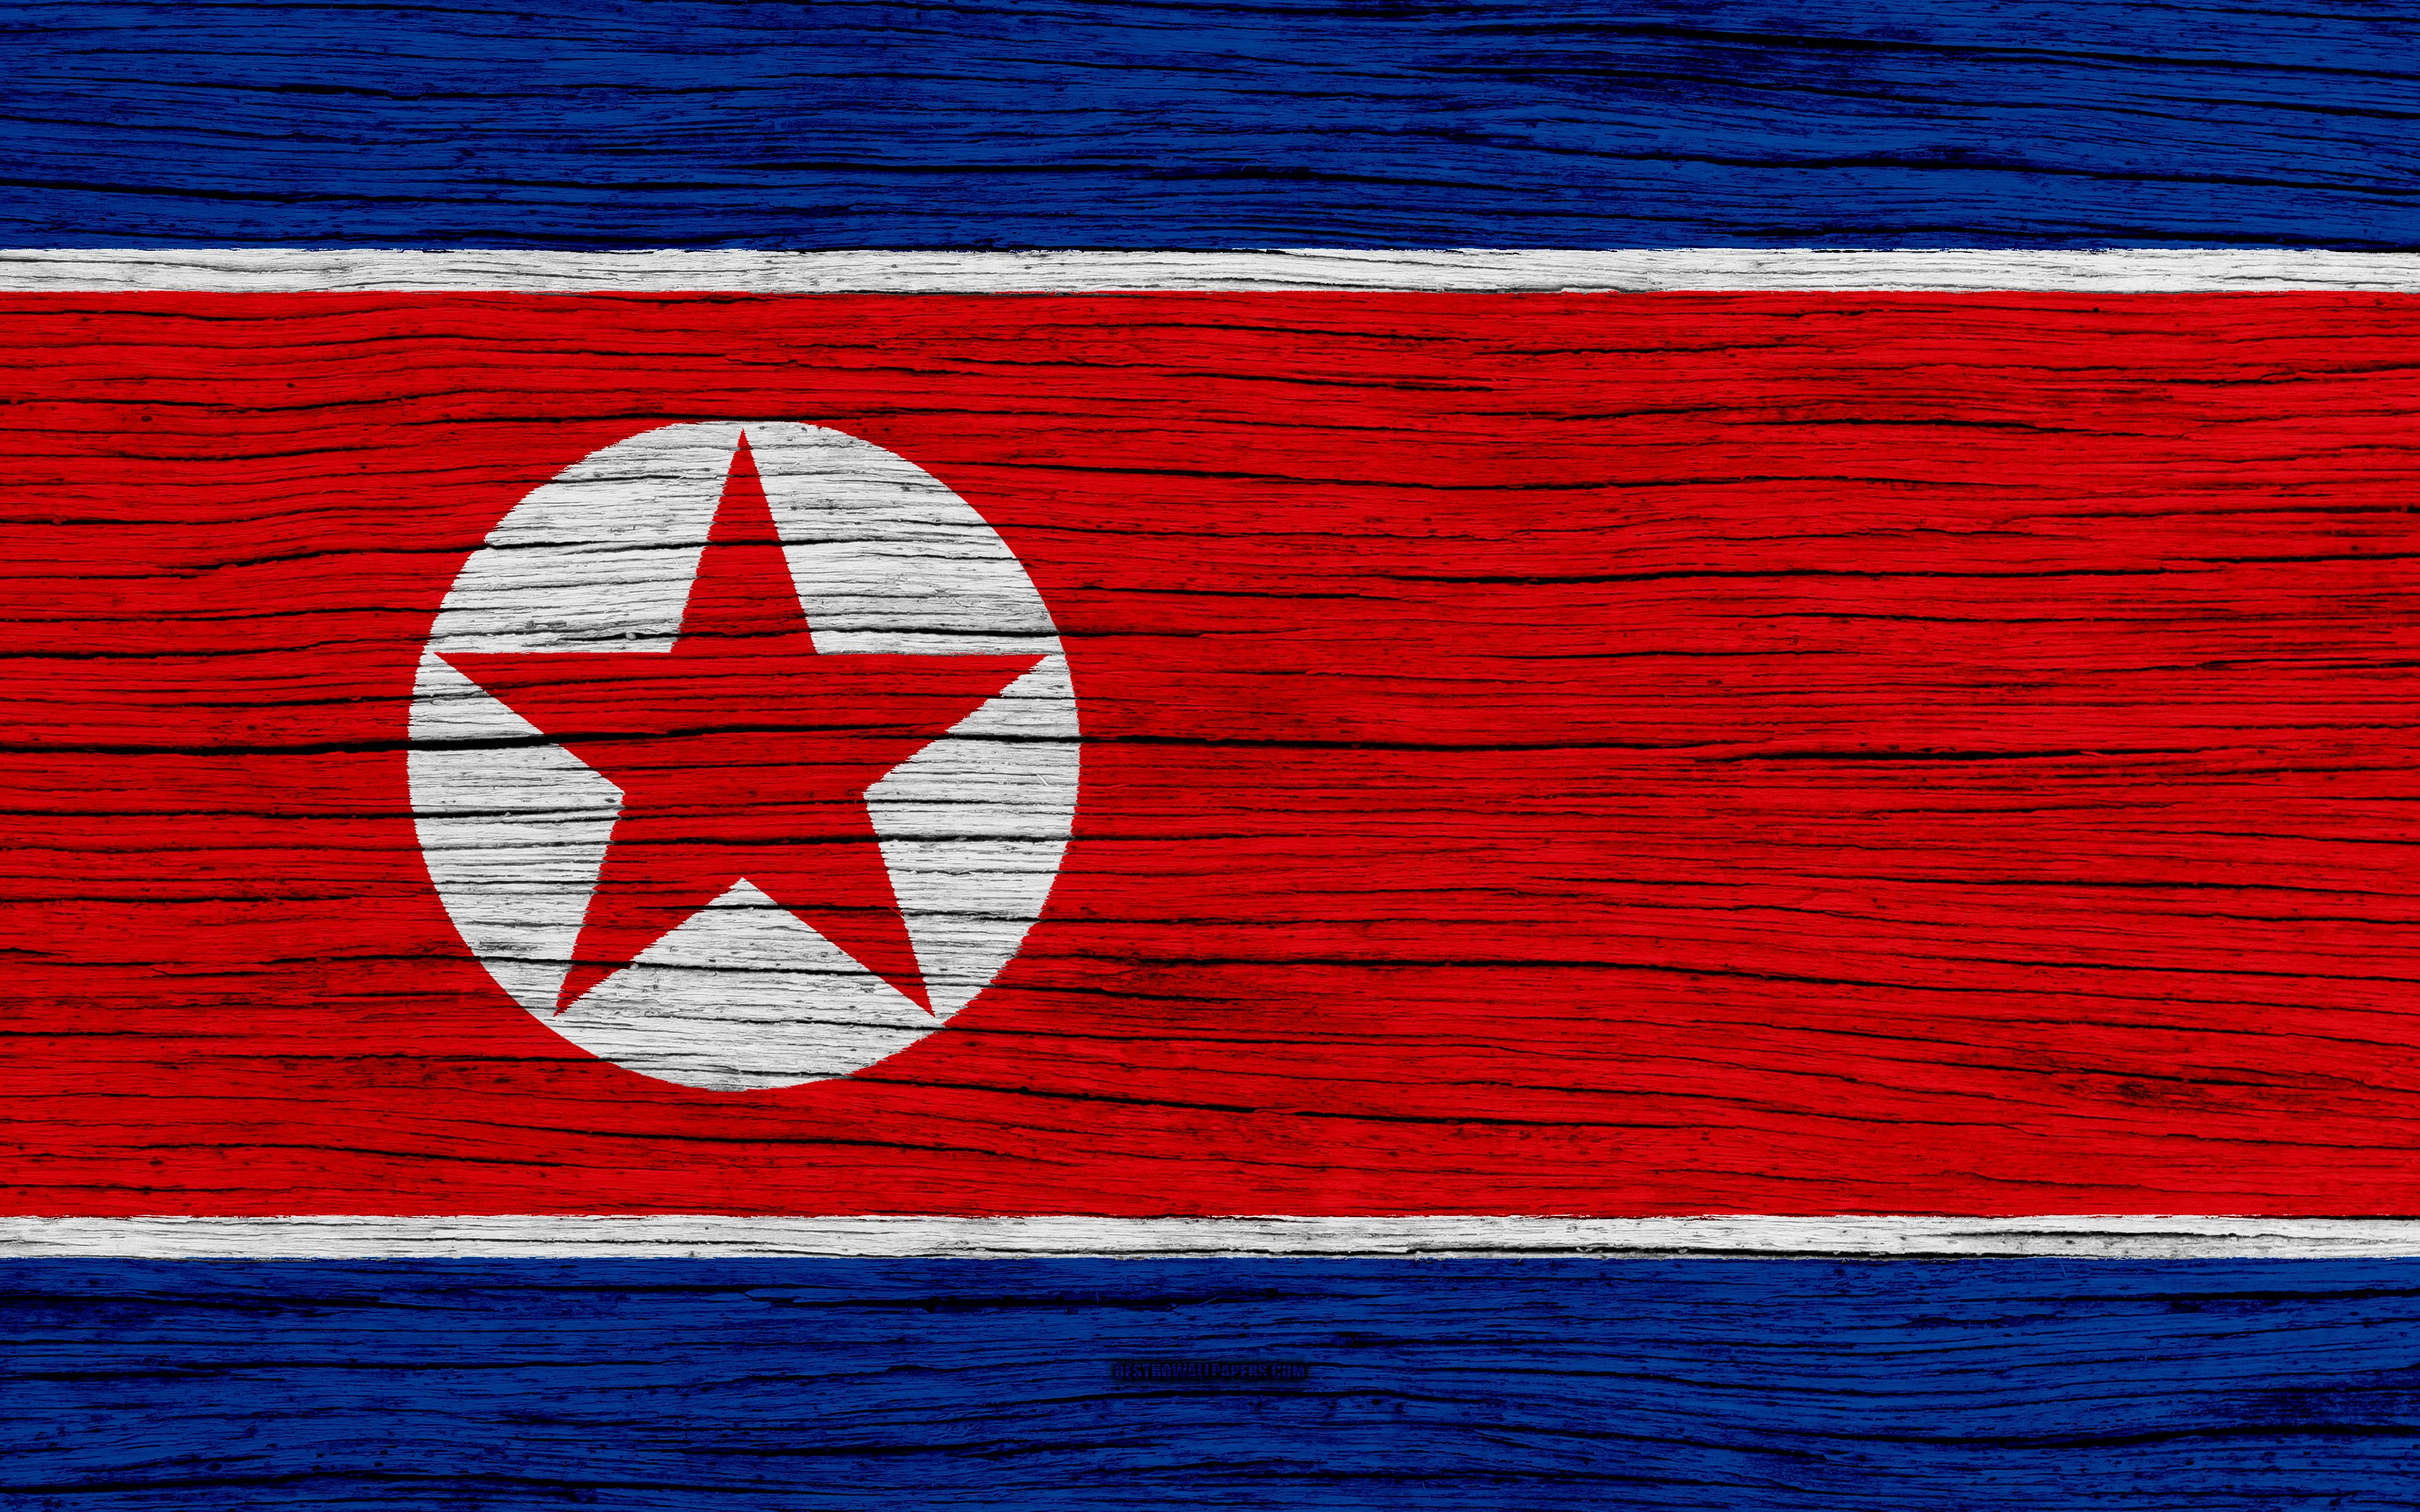 Download wallpapers Flag of North Korea, 4k, Asia, wooden texture